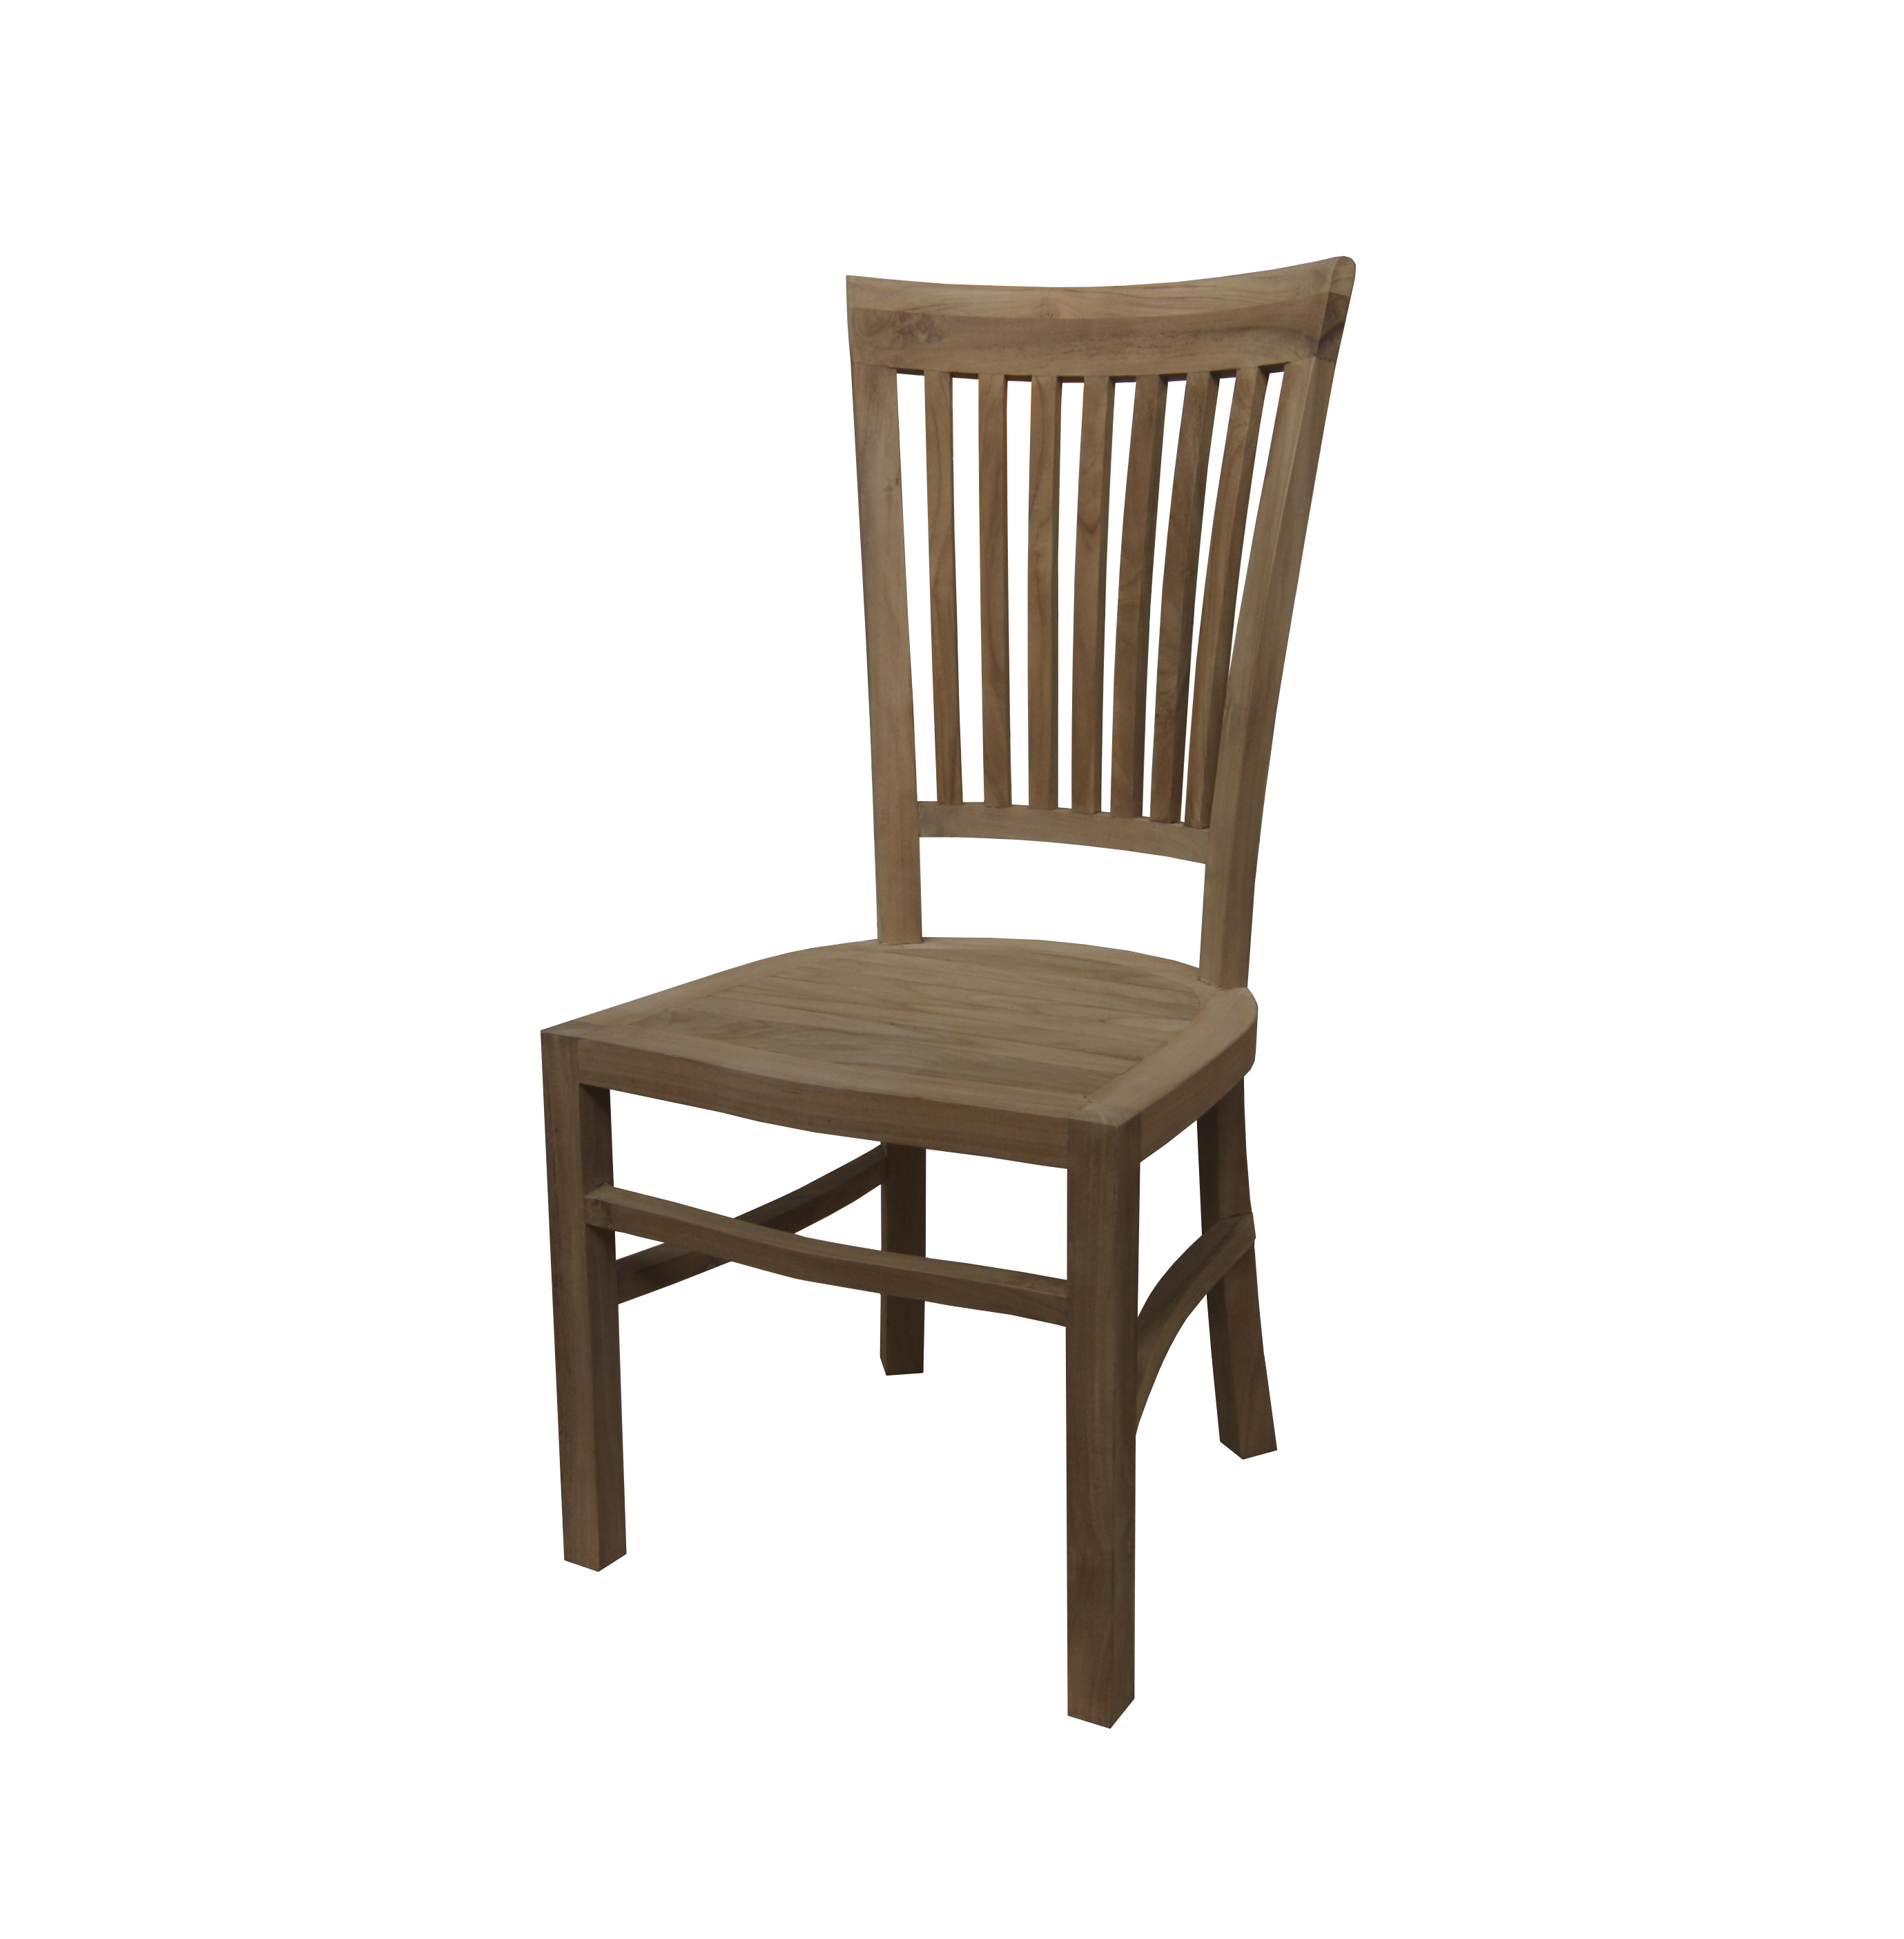 Teak dining chair the todo by ombak solid reclaimed